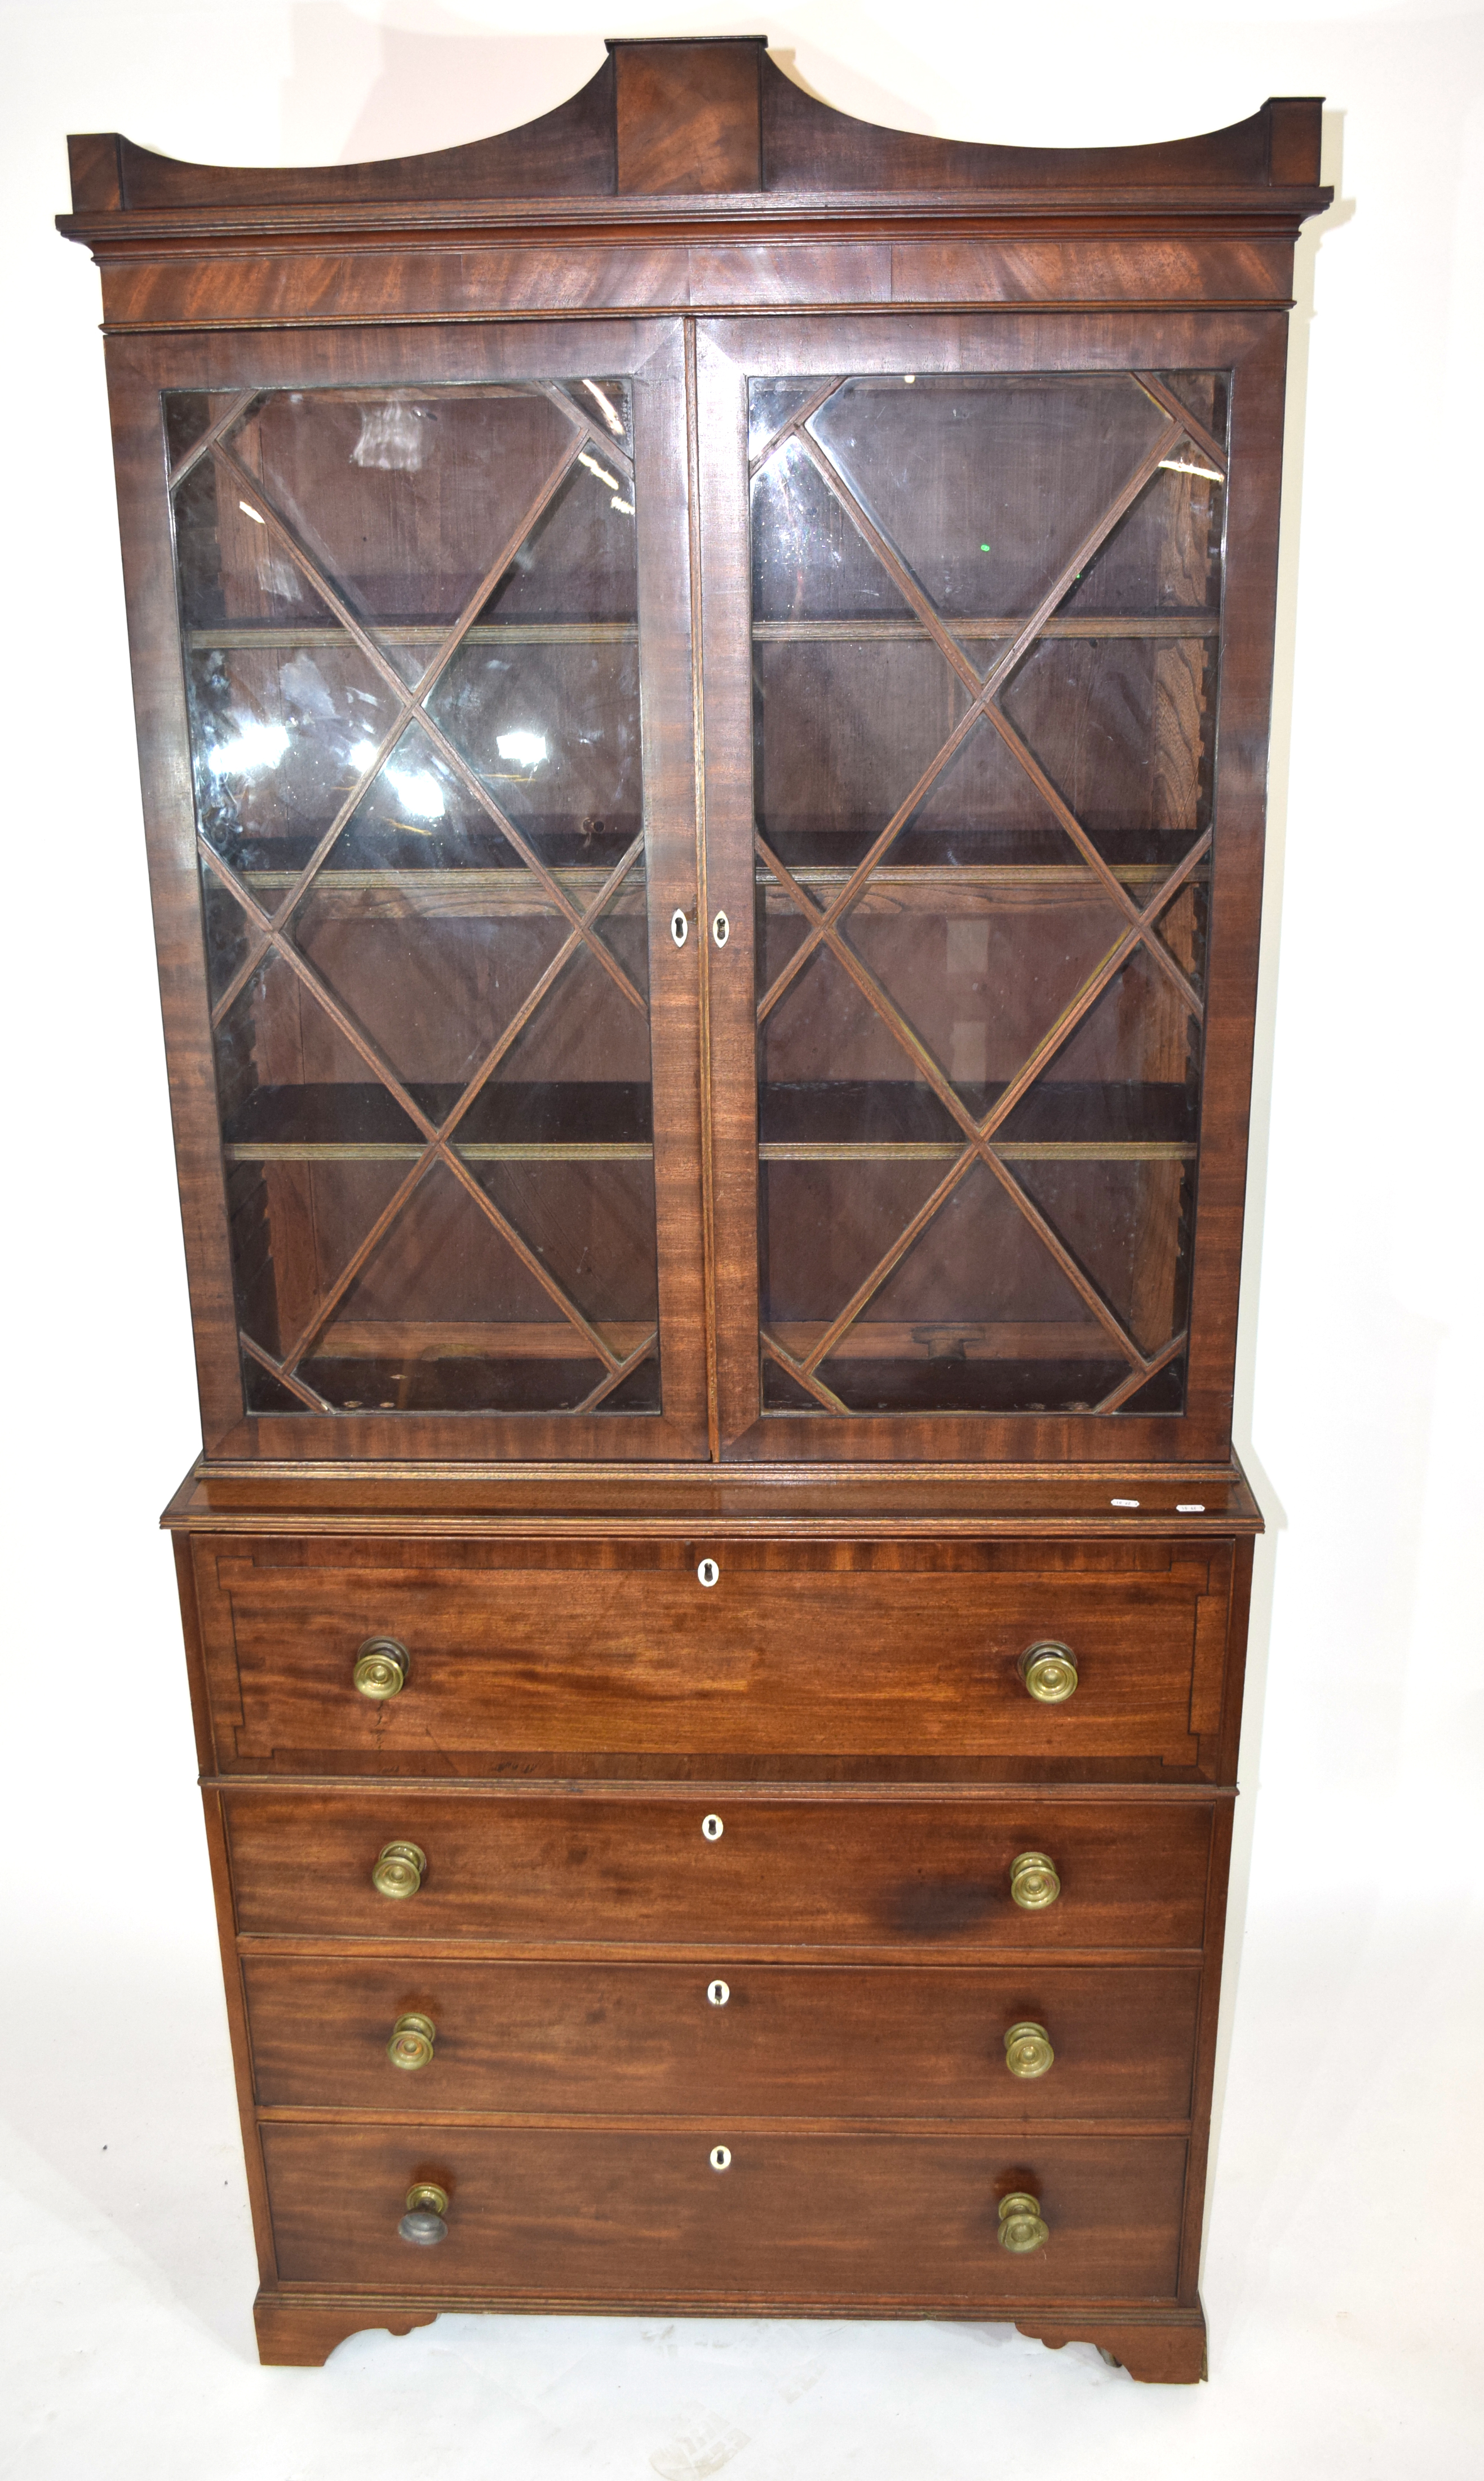 Georgian mahogany secretaire cabinet, top section with a shaped cornice over astragal glazed doors